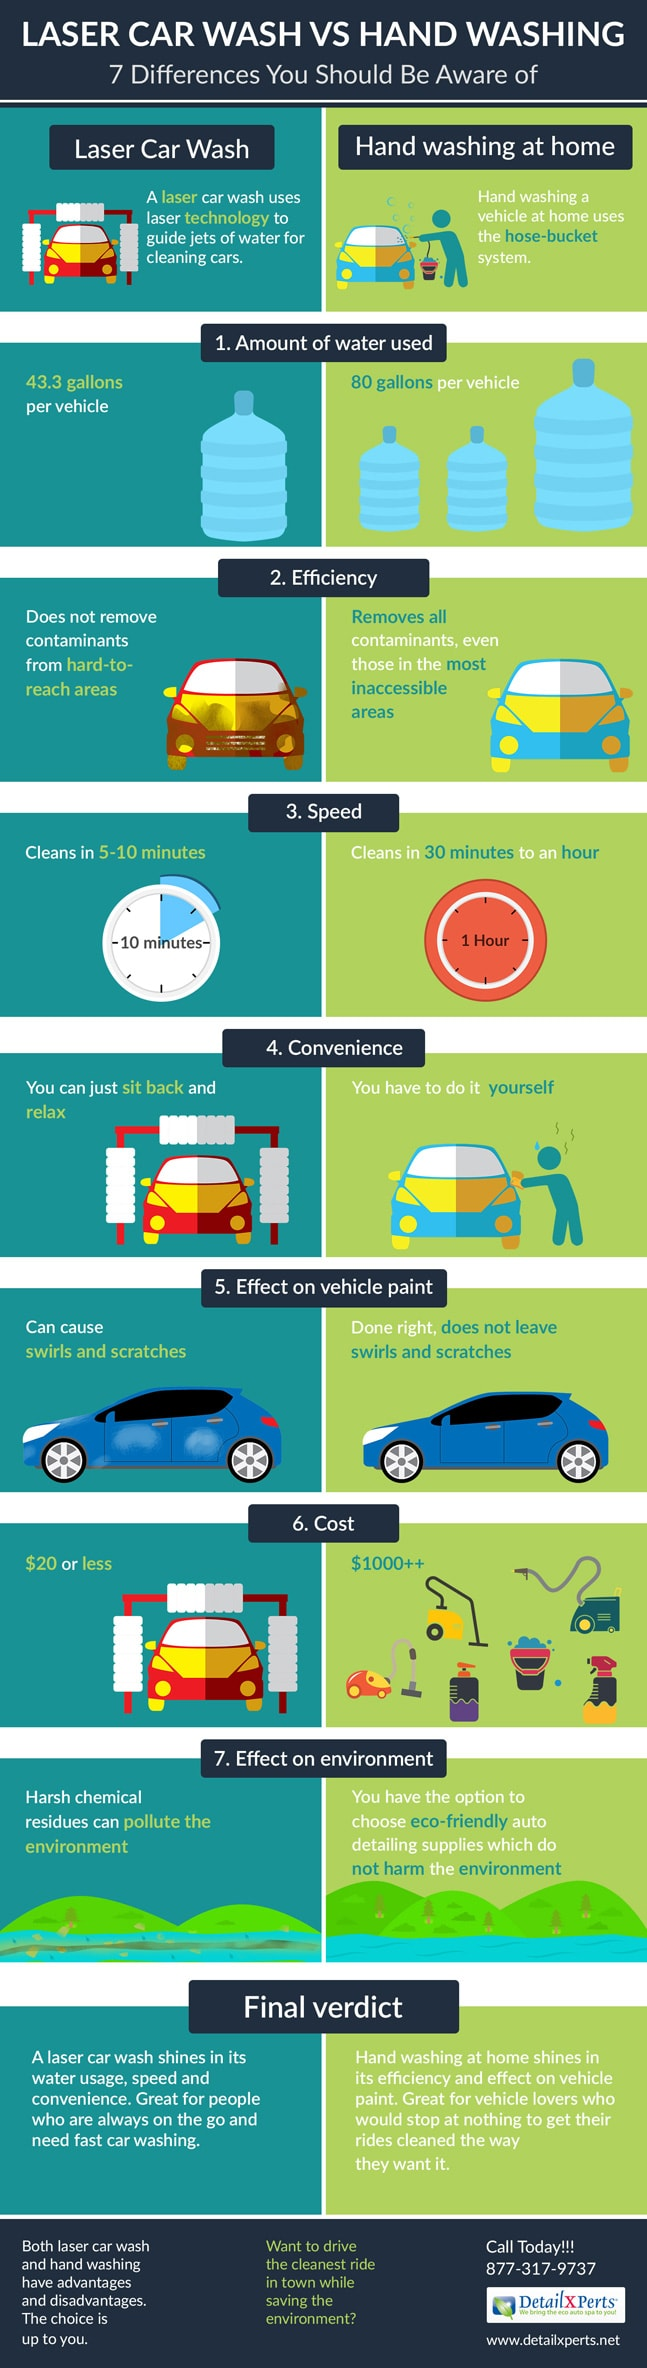 Laser Car Wash vs Hand Washing: 7 Differences You Should Be Aware of [Infographic]